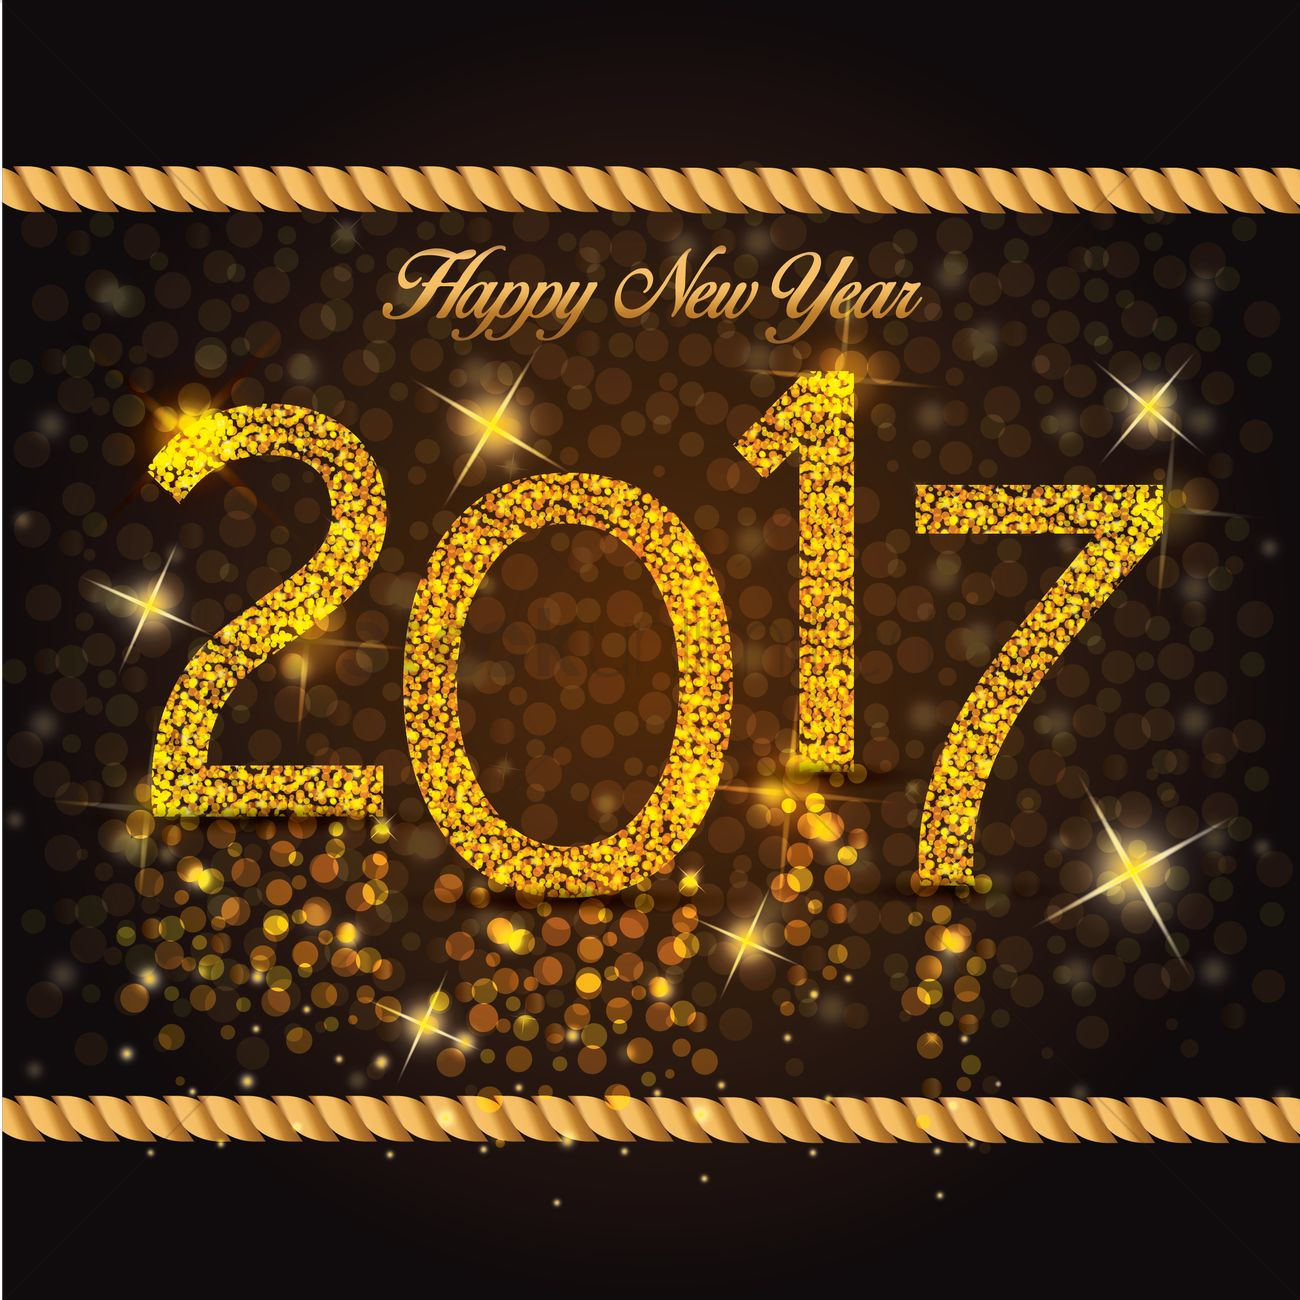 Happy new year 2017 Vector Image - 1913135 | StockUnlimited